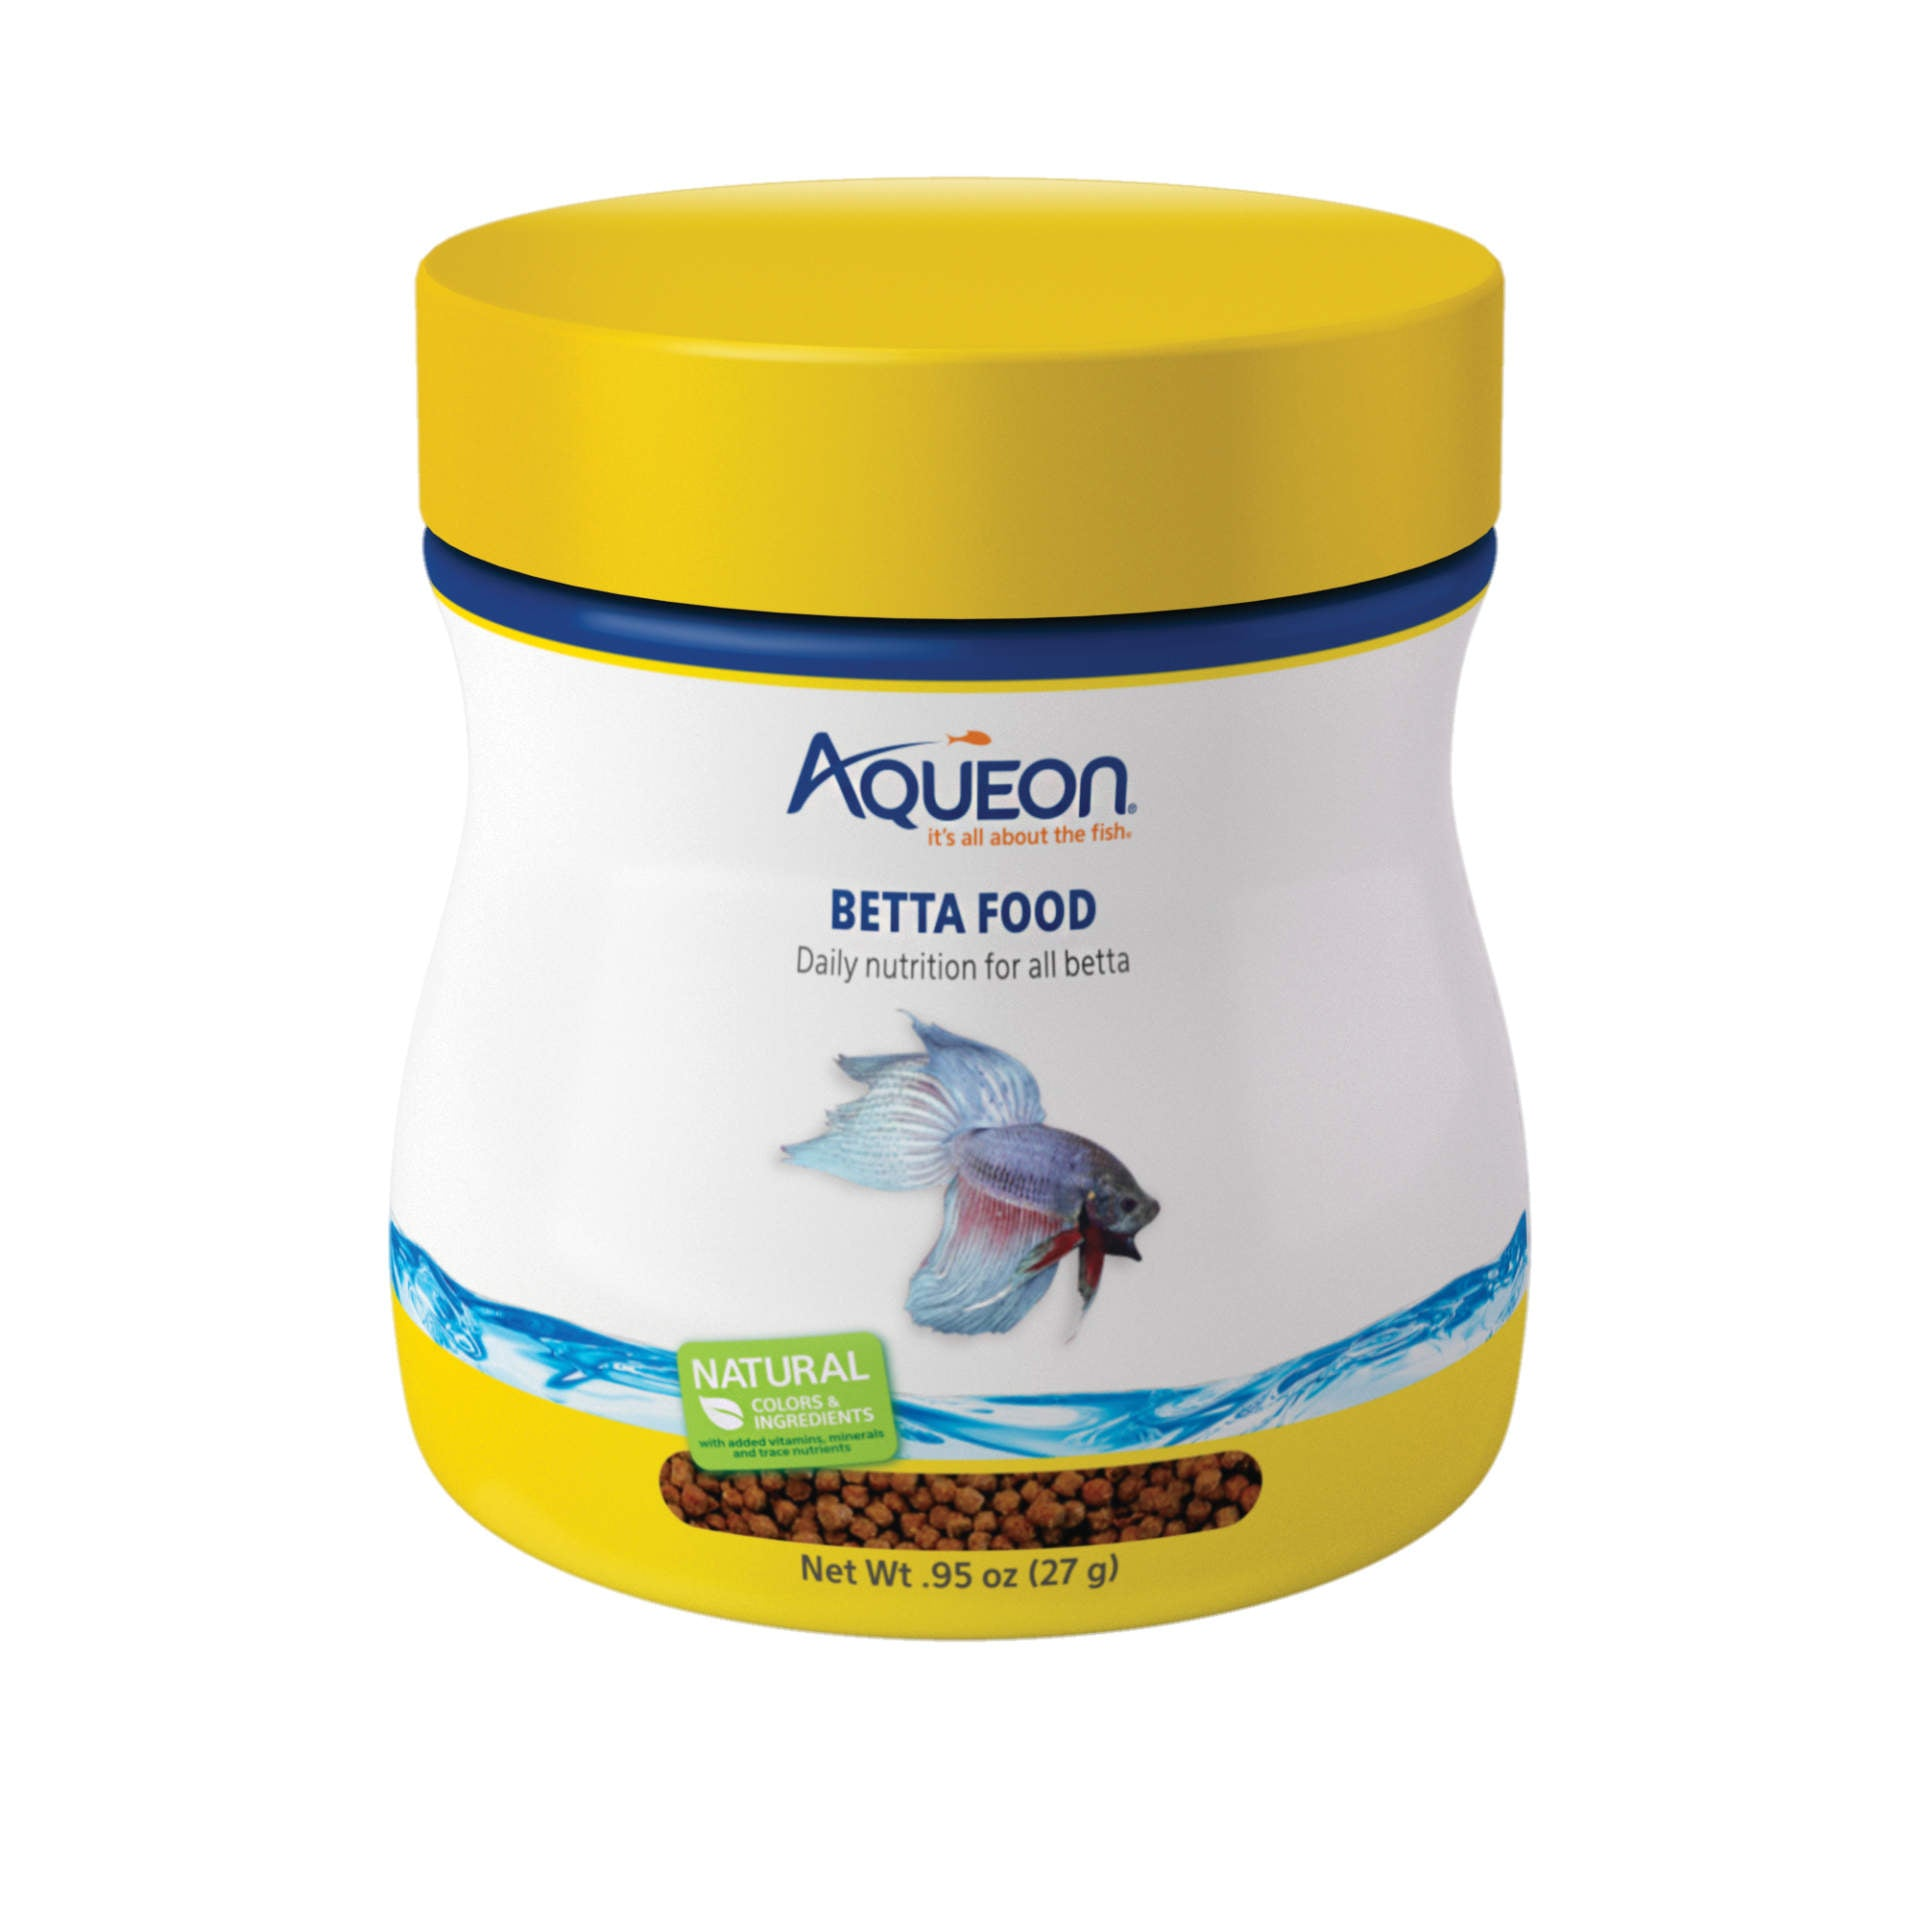 Aqueon Betta Food